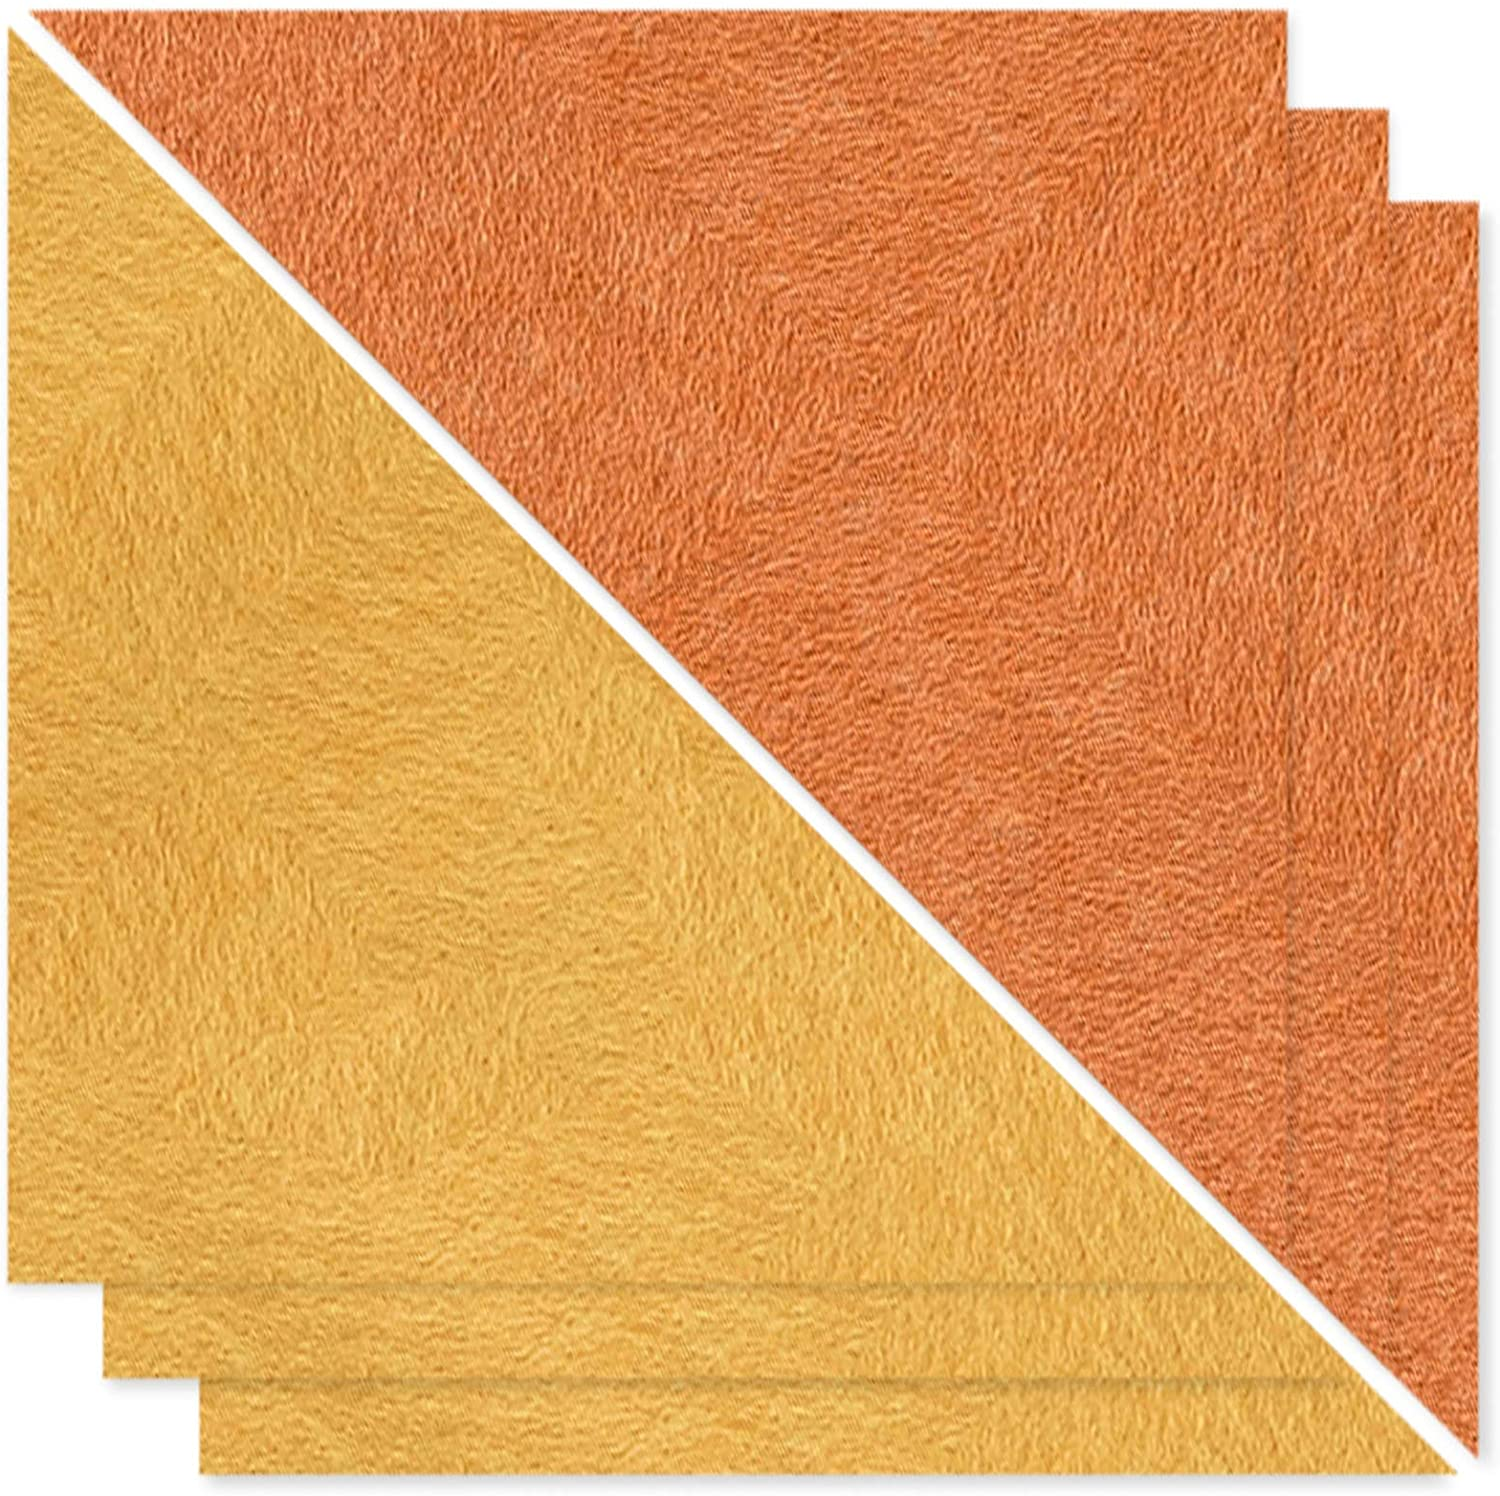 BUBOS 6 Pack Triangle Acoustic Panels Sound Proof Padding, 16.7 X 11.8 X 0.4 Inches Multi-Color Free Combination Sound dampening Panel Used in Home & Offices,Tangerine+Orange